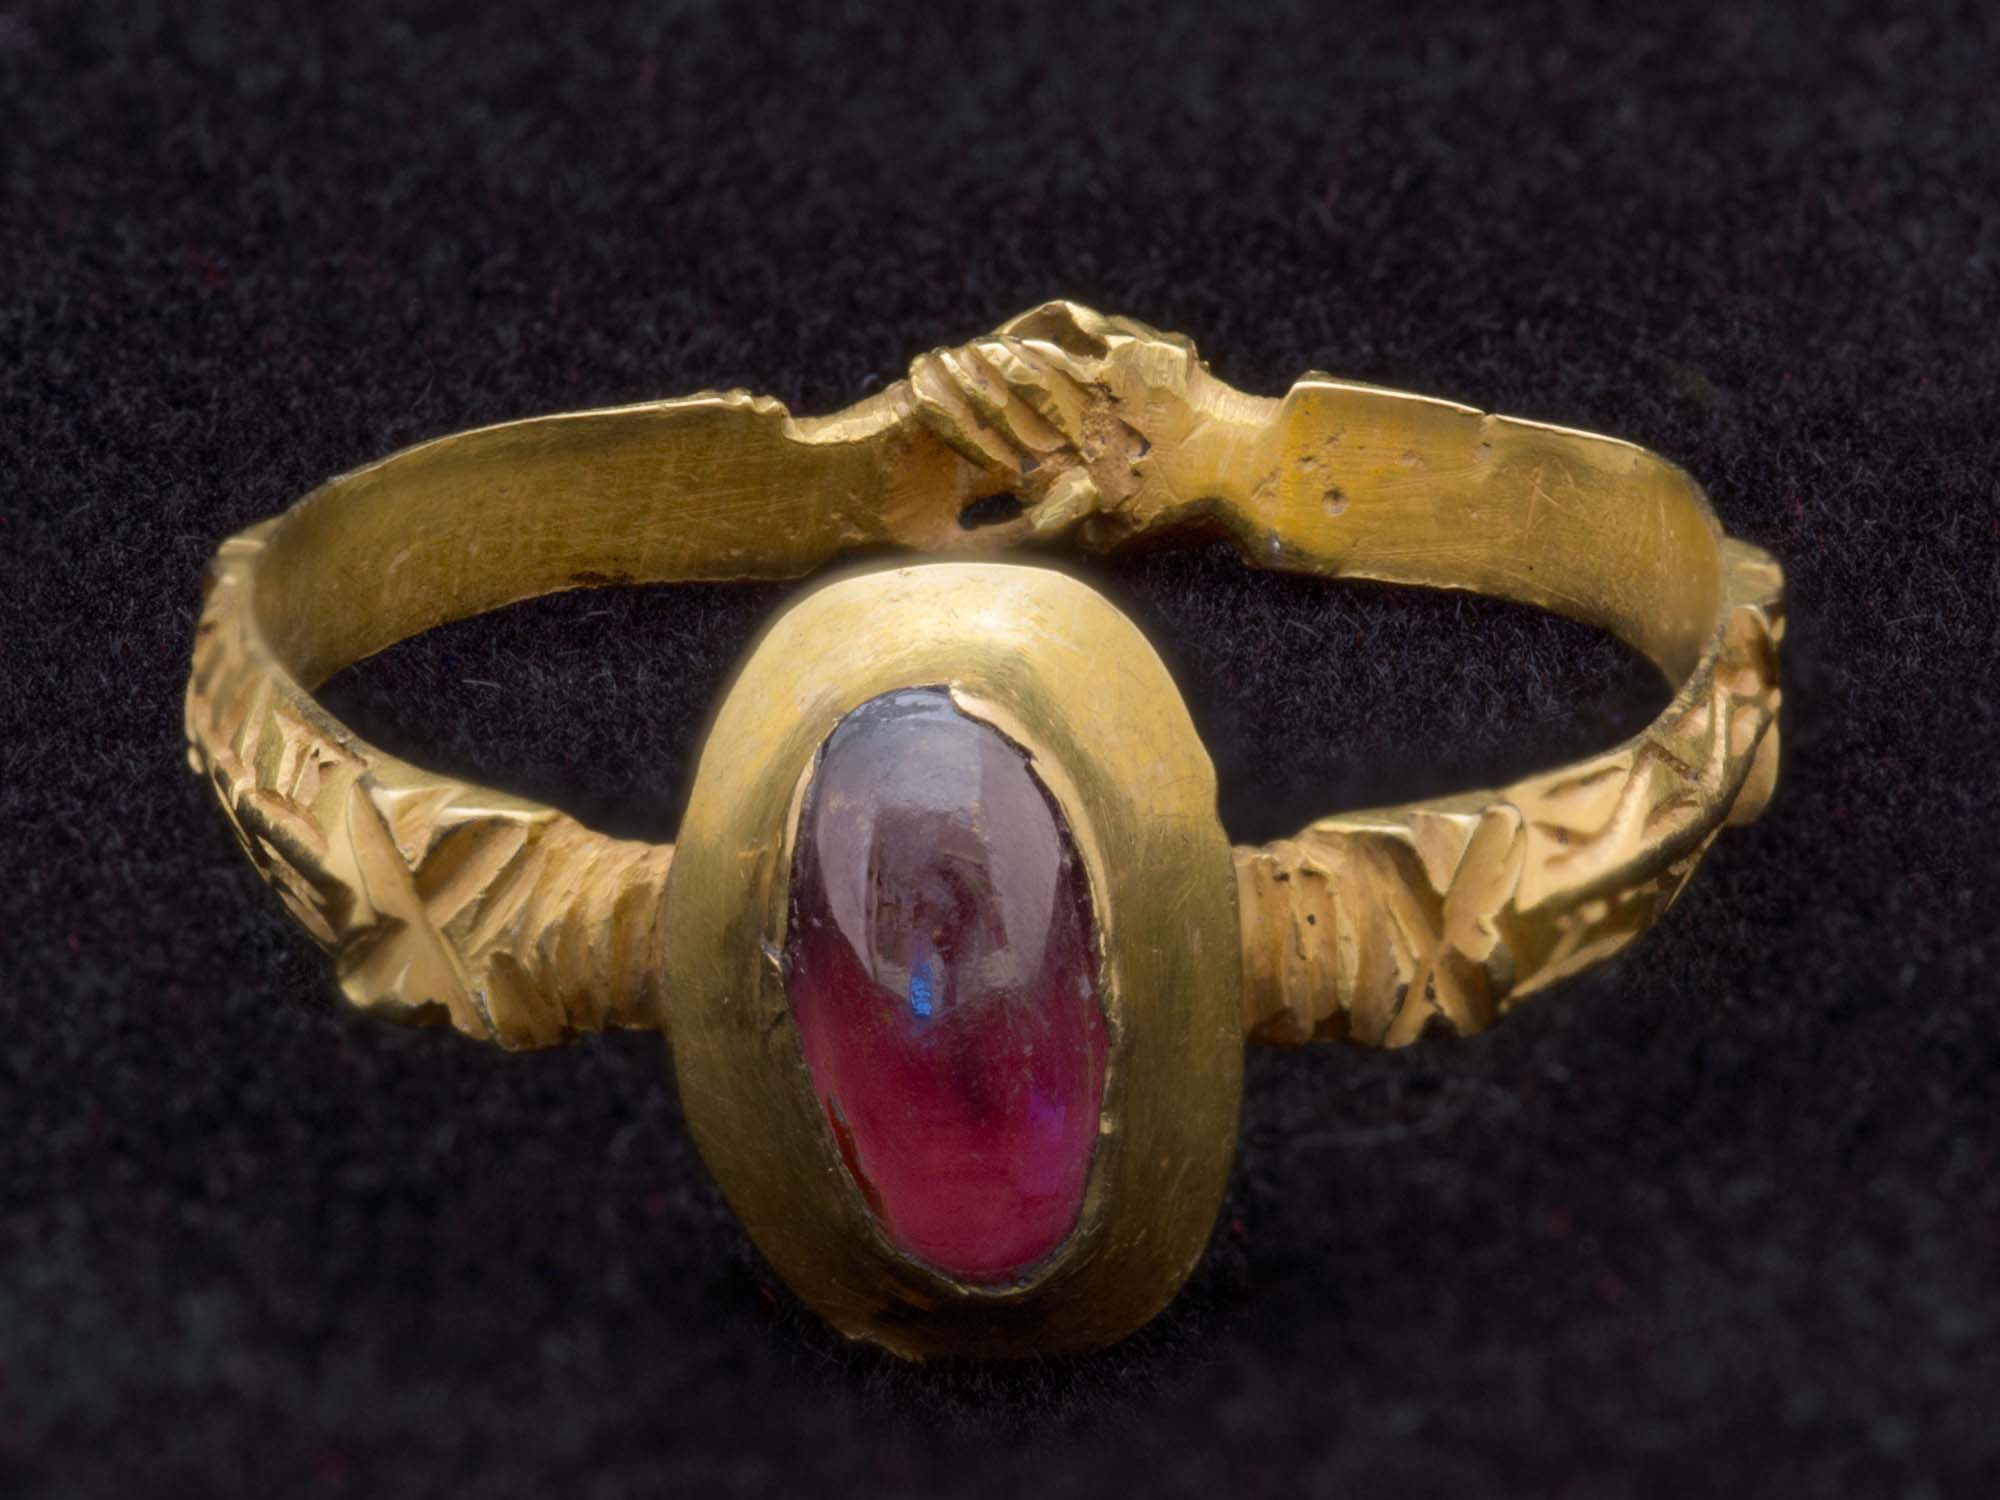 a golden ring with handclasp design on the band and a ruby stone